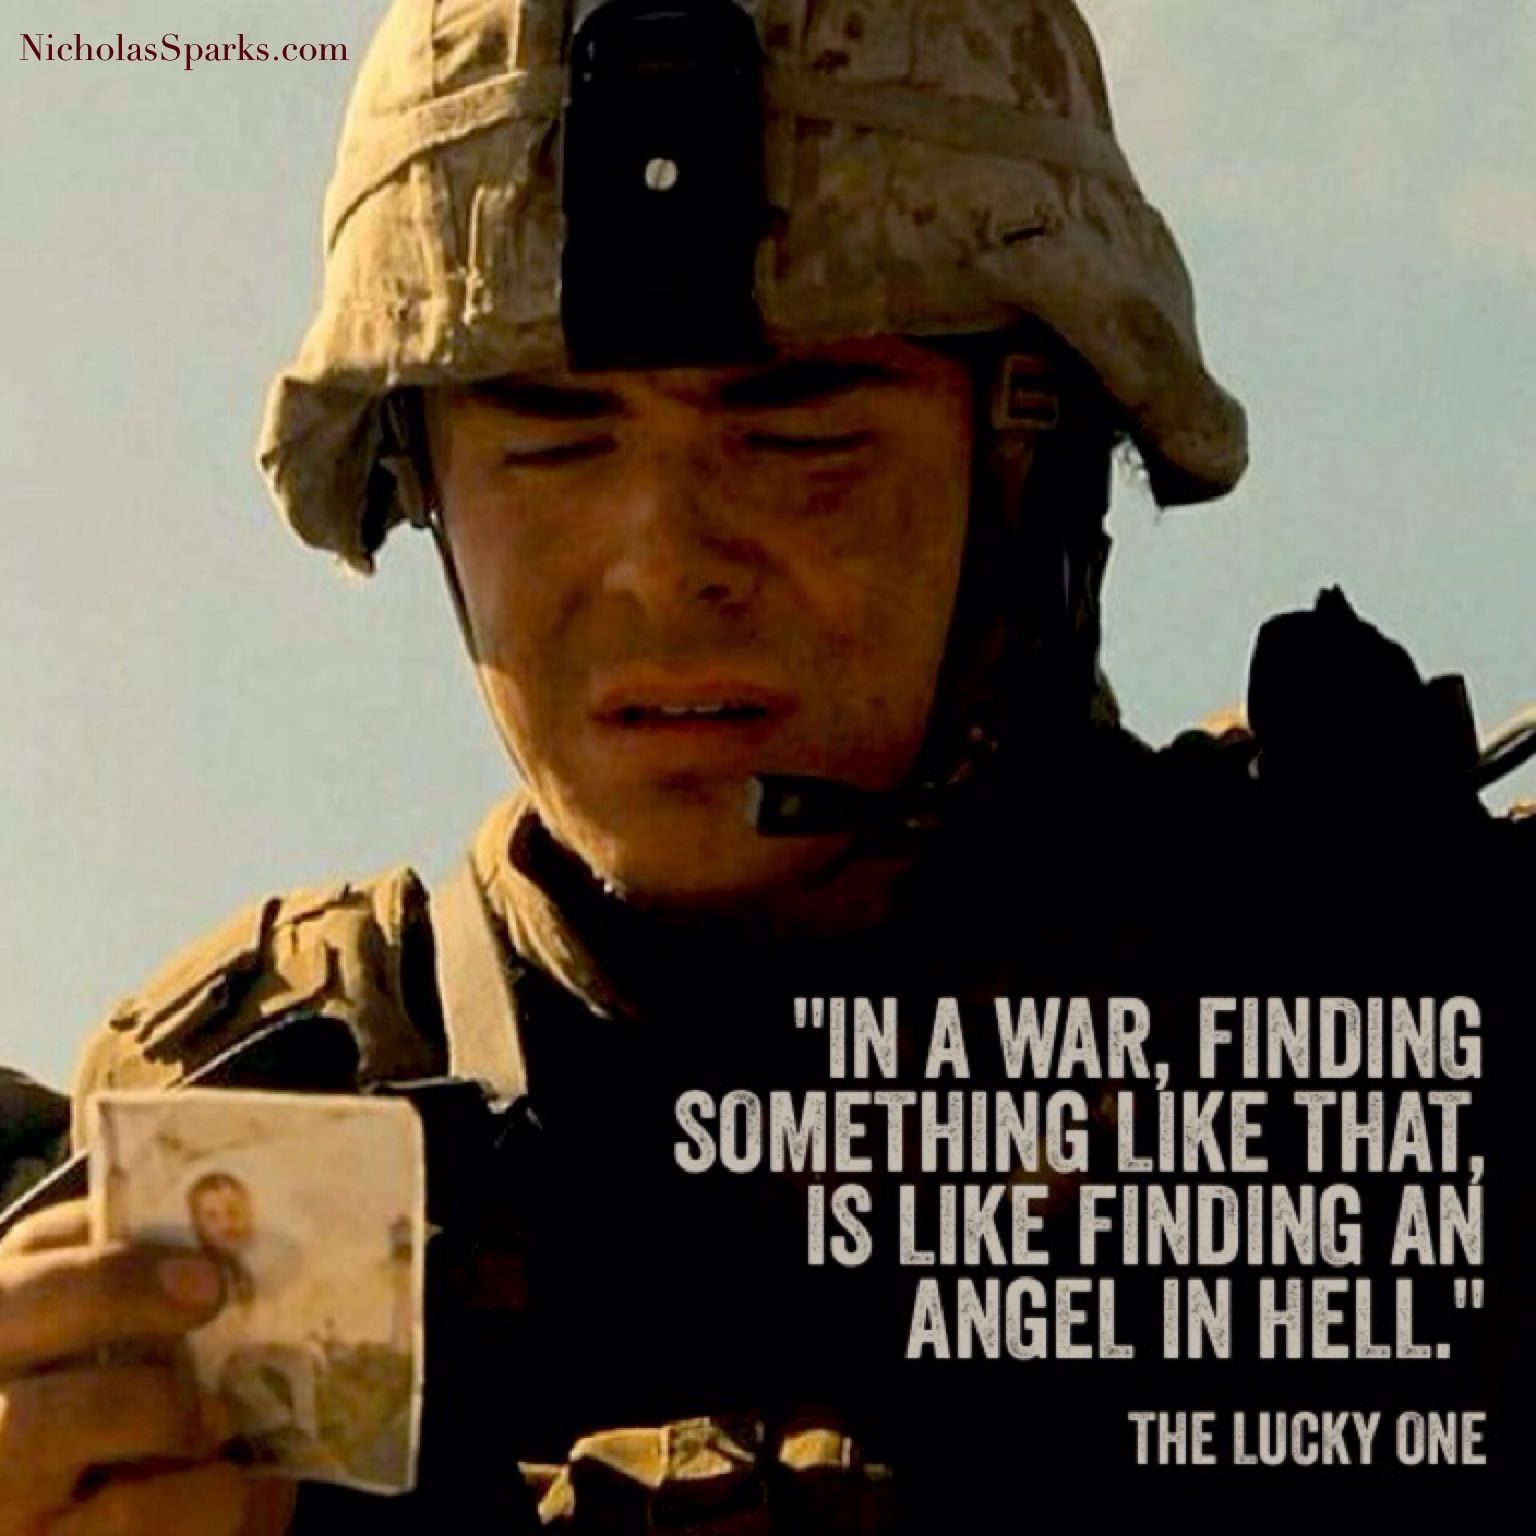 zac efron the lucky one quotes - photo #29